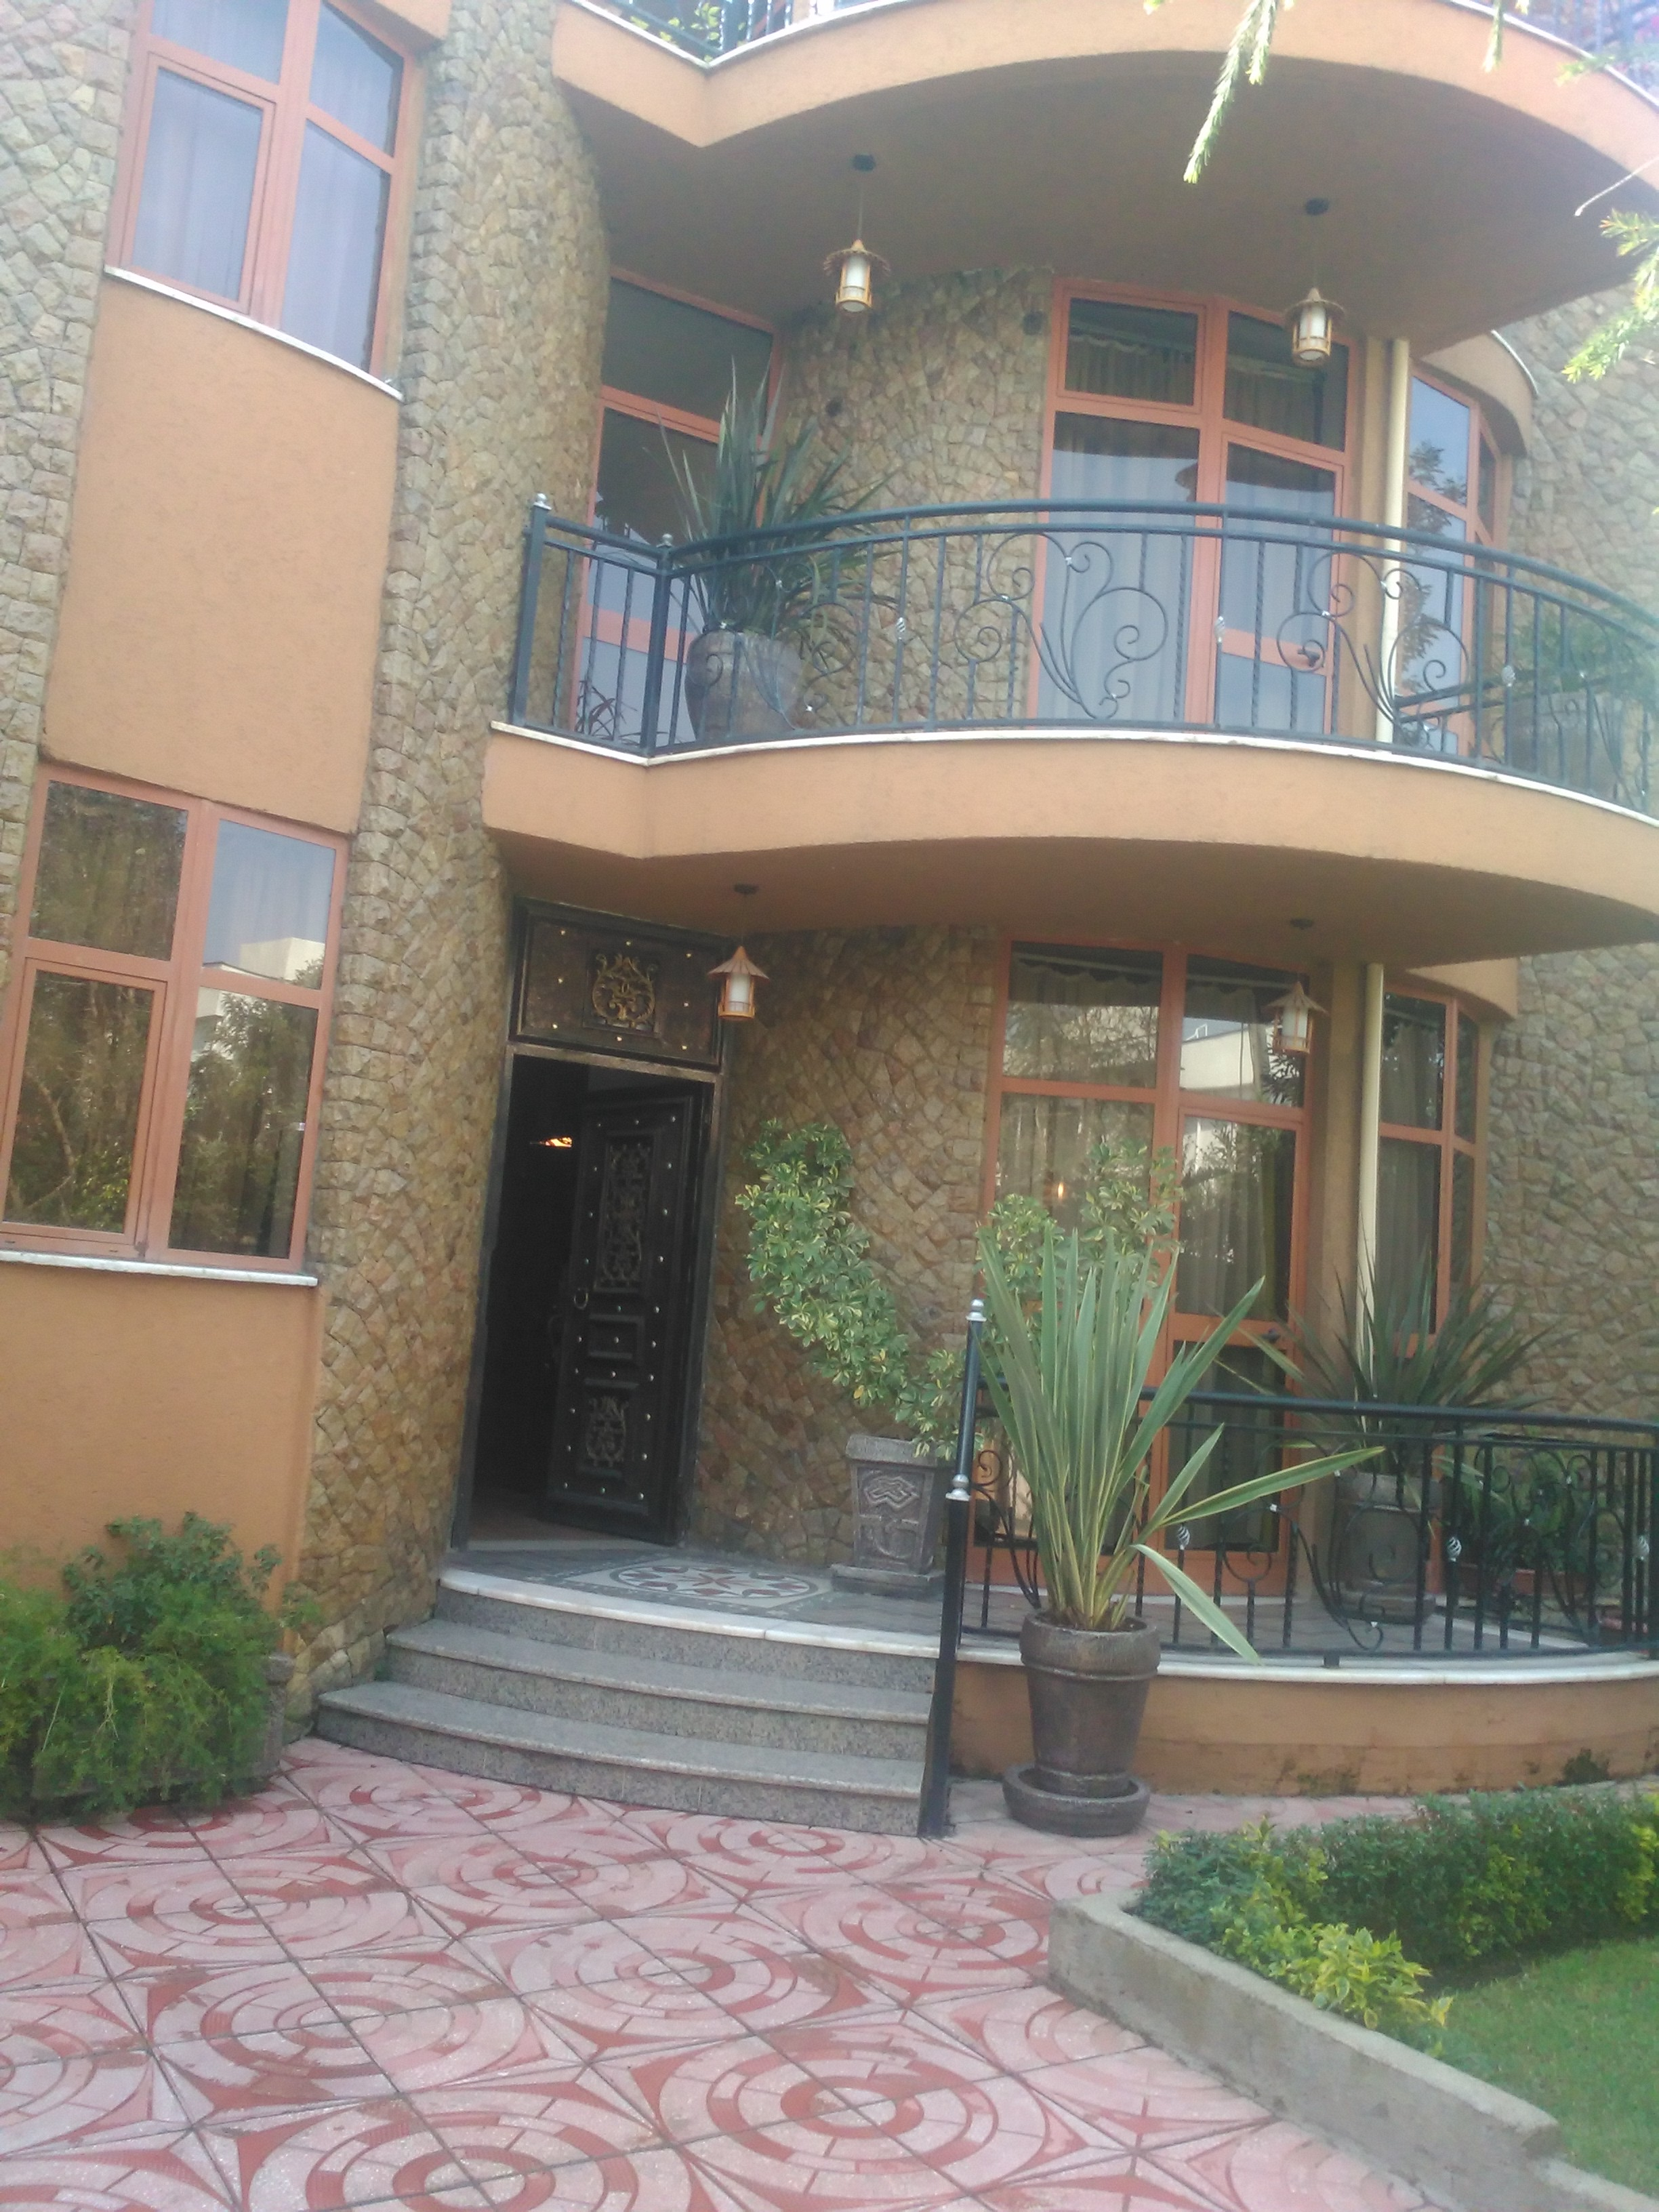 Ethiopian House Design: GORGEOUS G+2 HOME:EHA618 - Addis Ababa Other